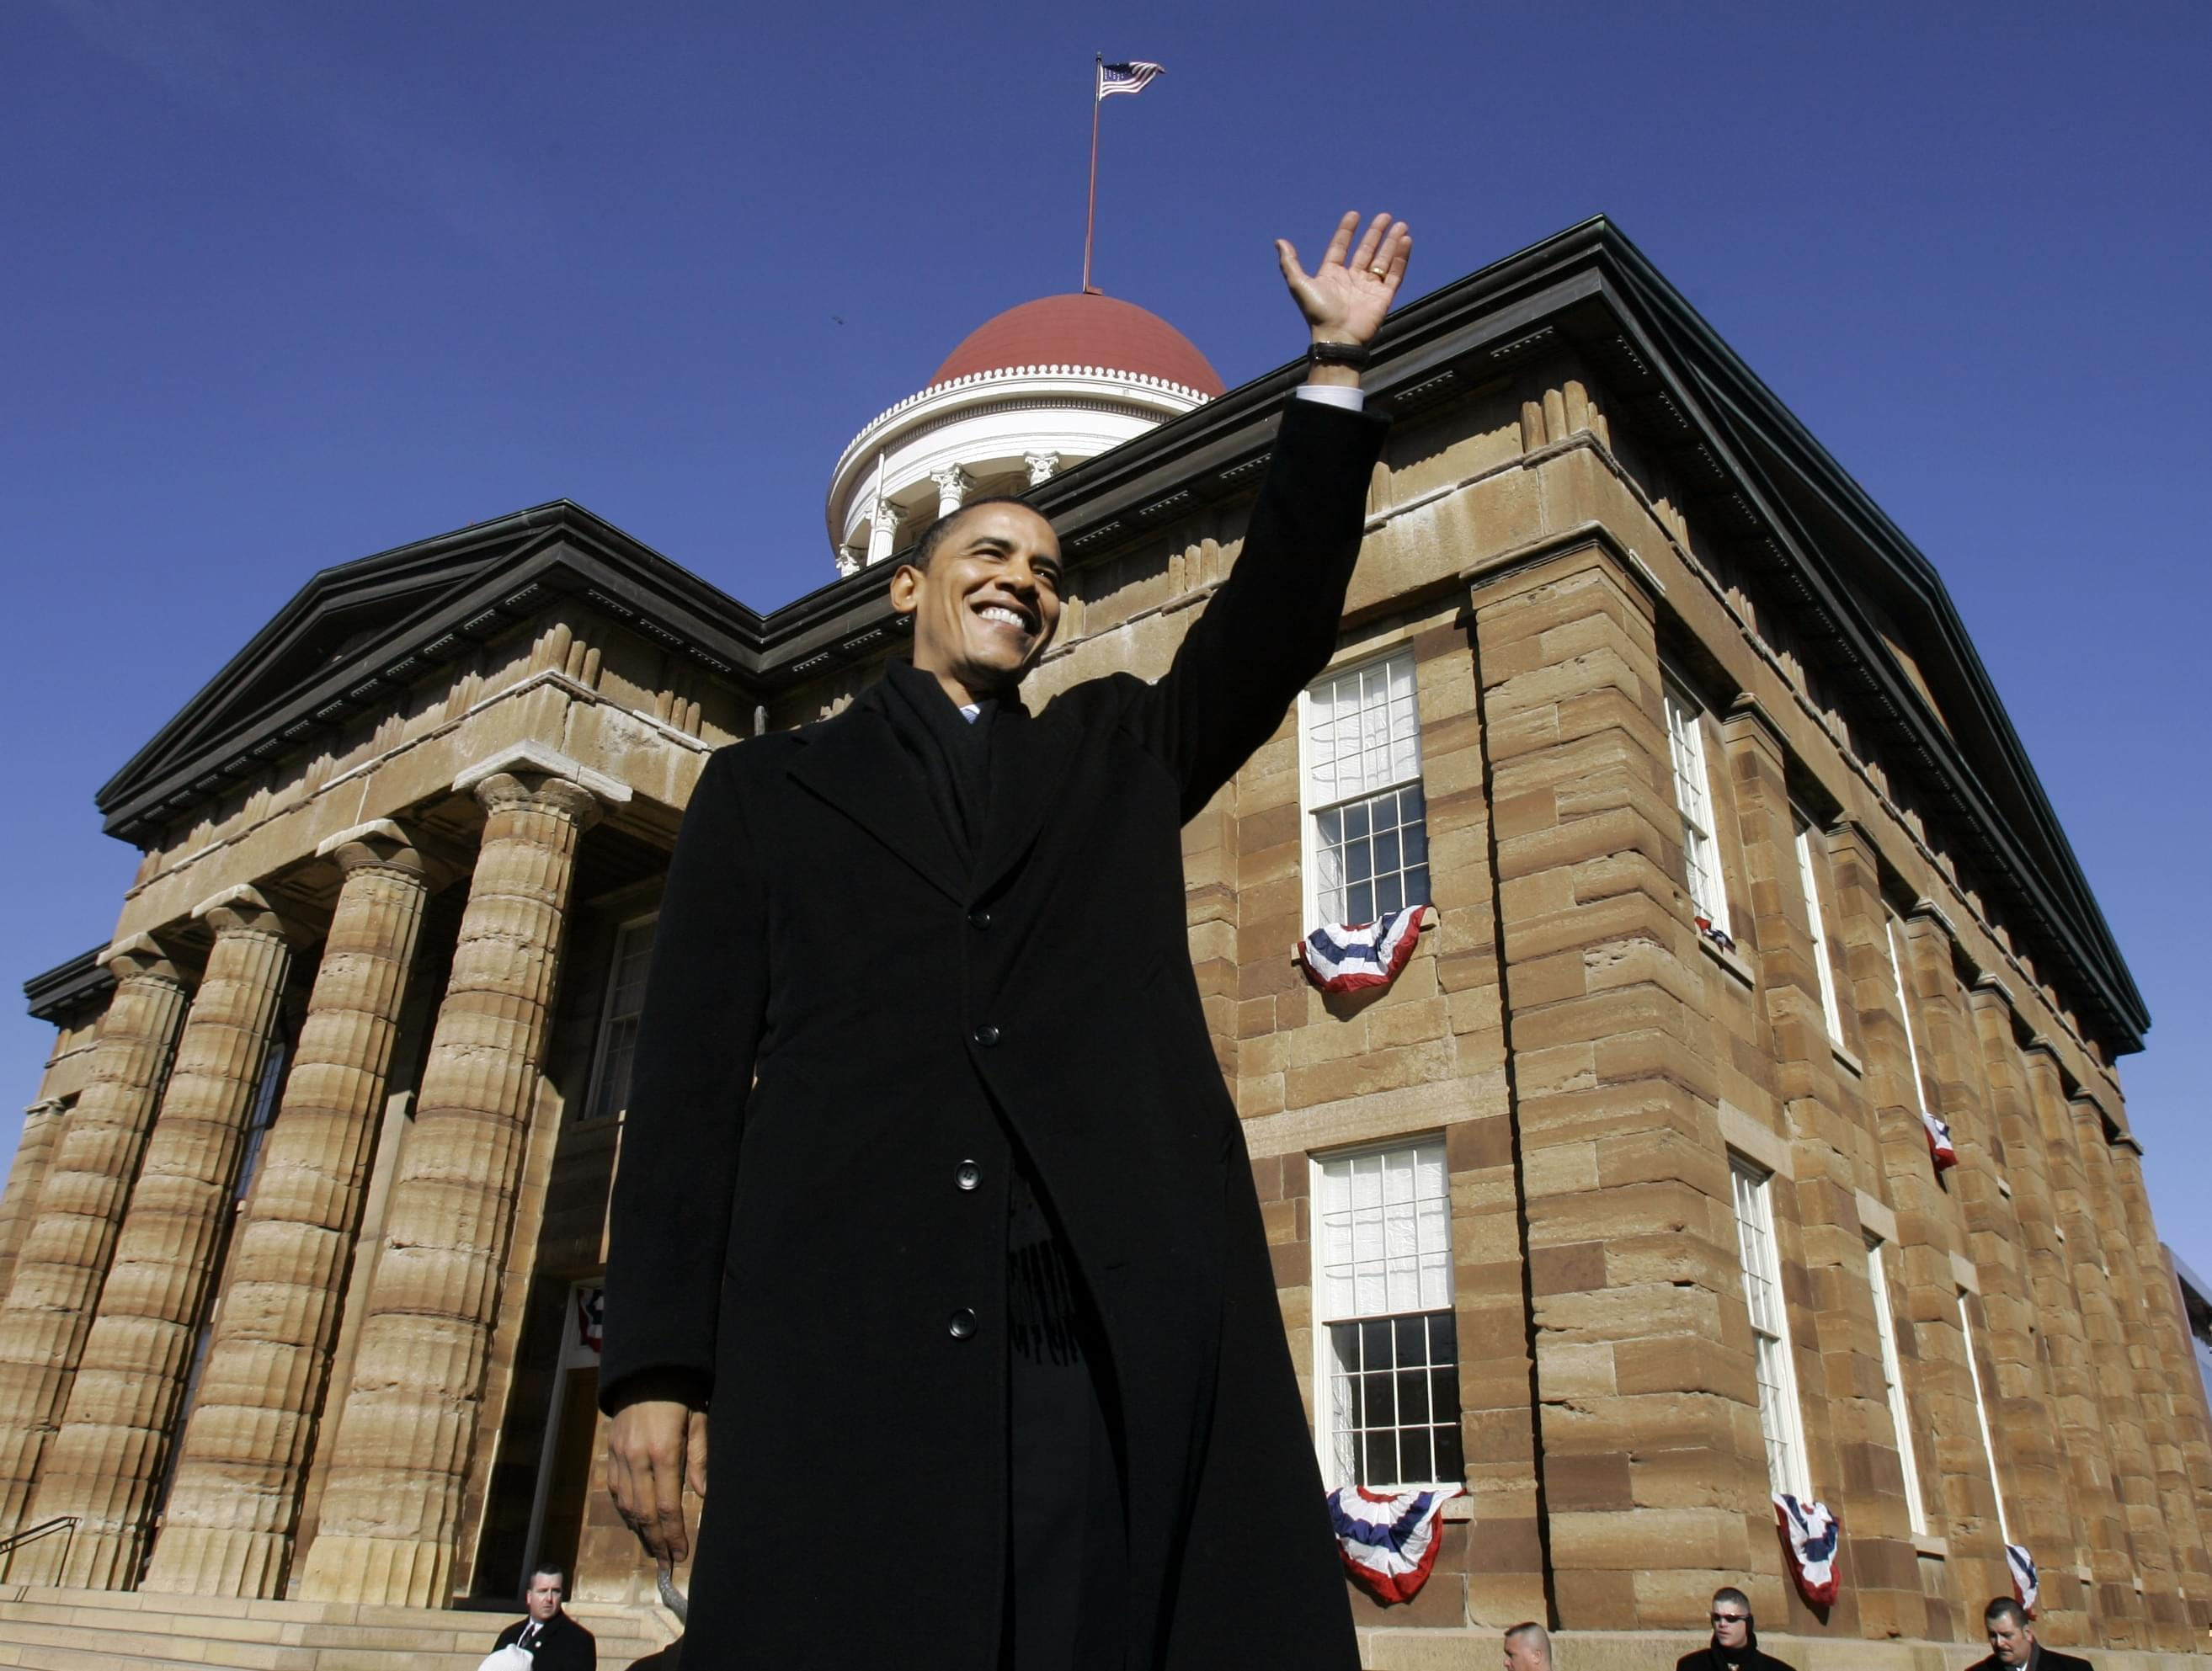 Then-U.S. Sen. Barack Obama of Illinois, waves to spectators as he arrives to announce his candidacy for president of the United States at the Old State Capitol in Springfield, Ill., Saturday, Feb. 10, 2007.